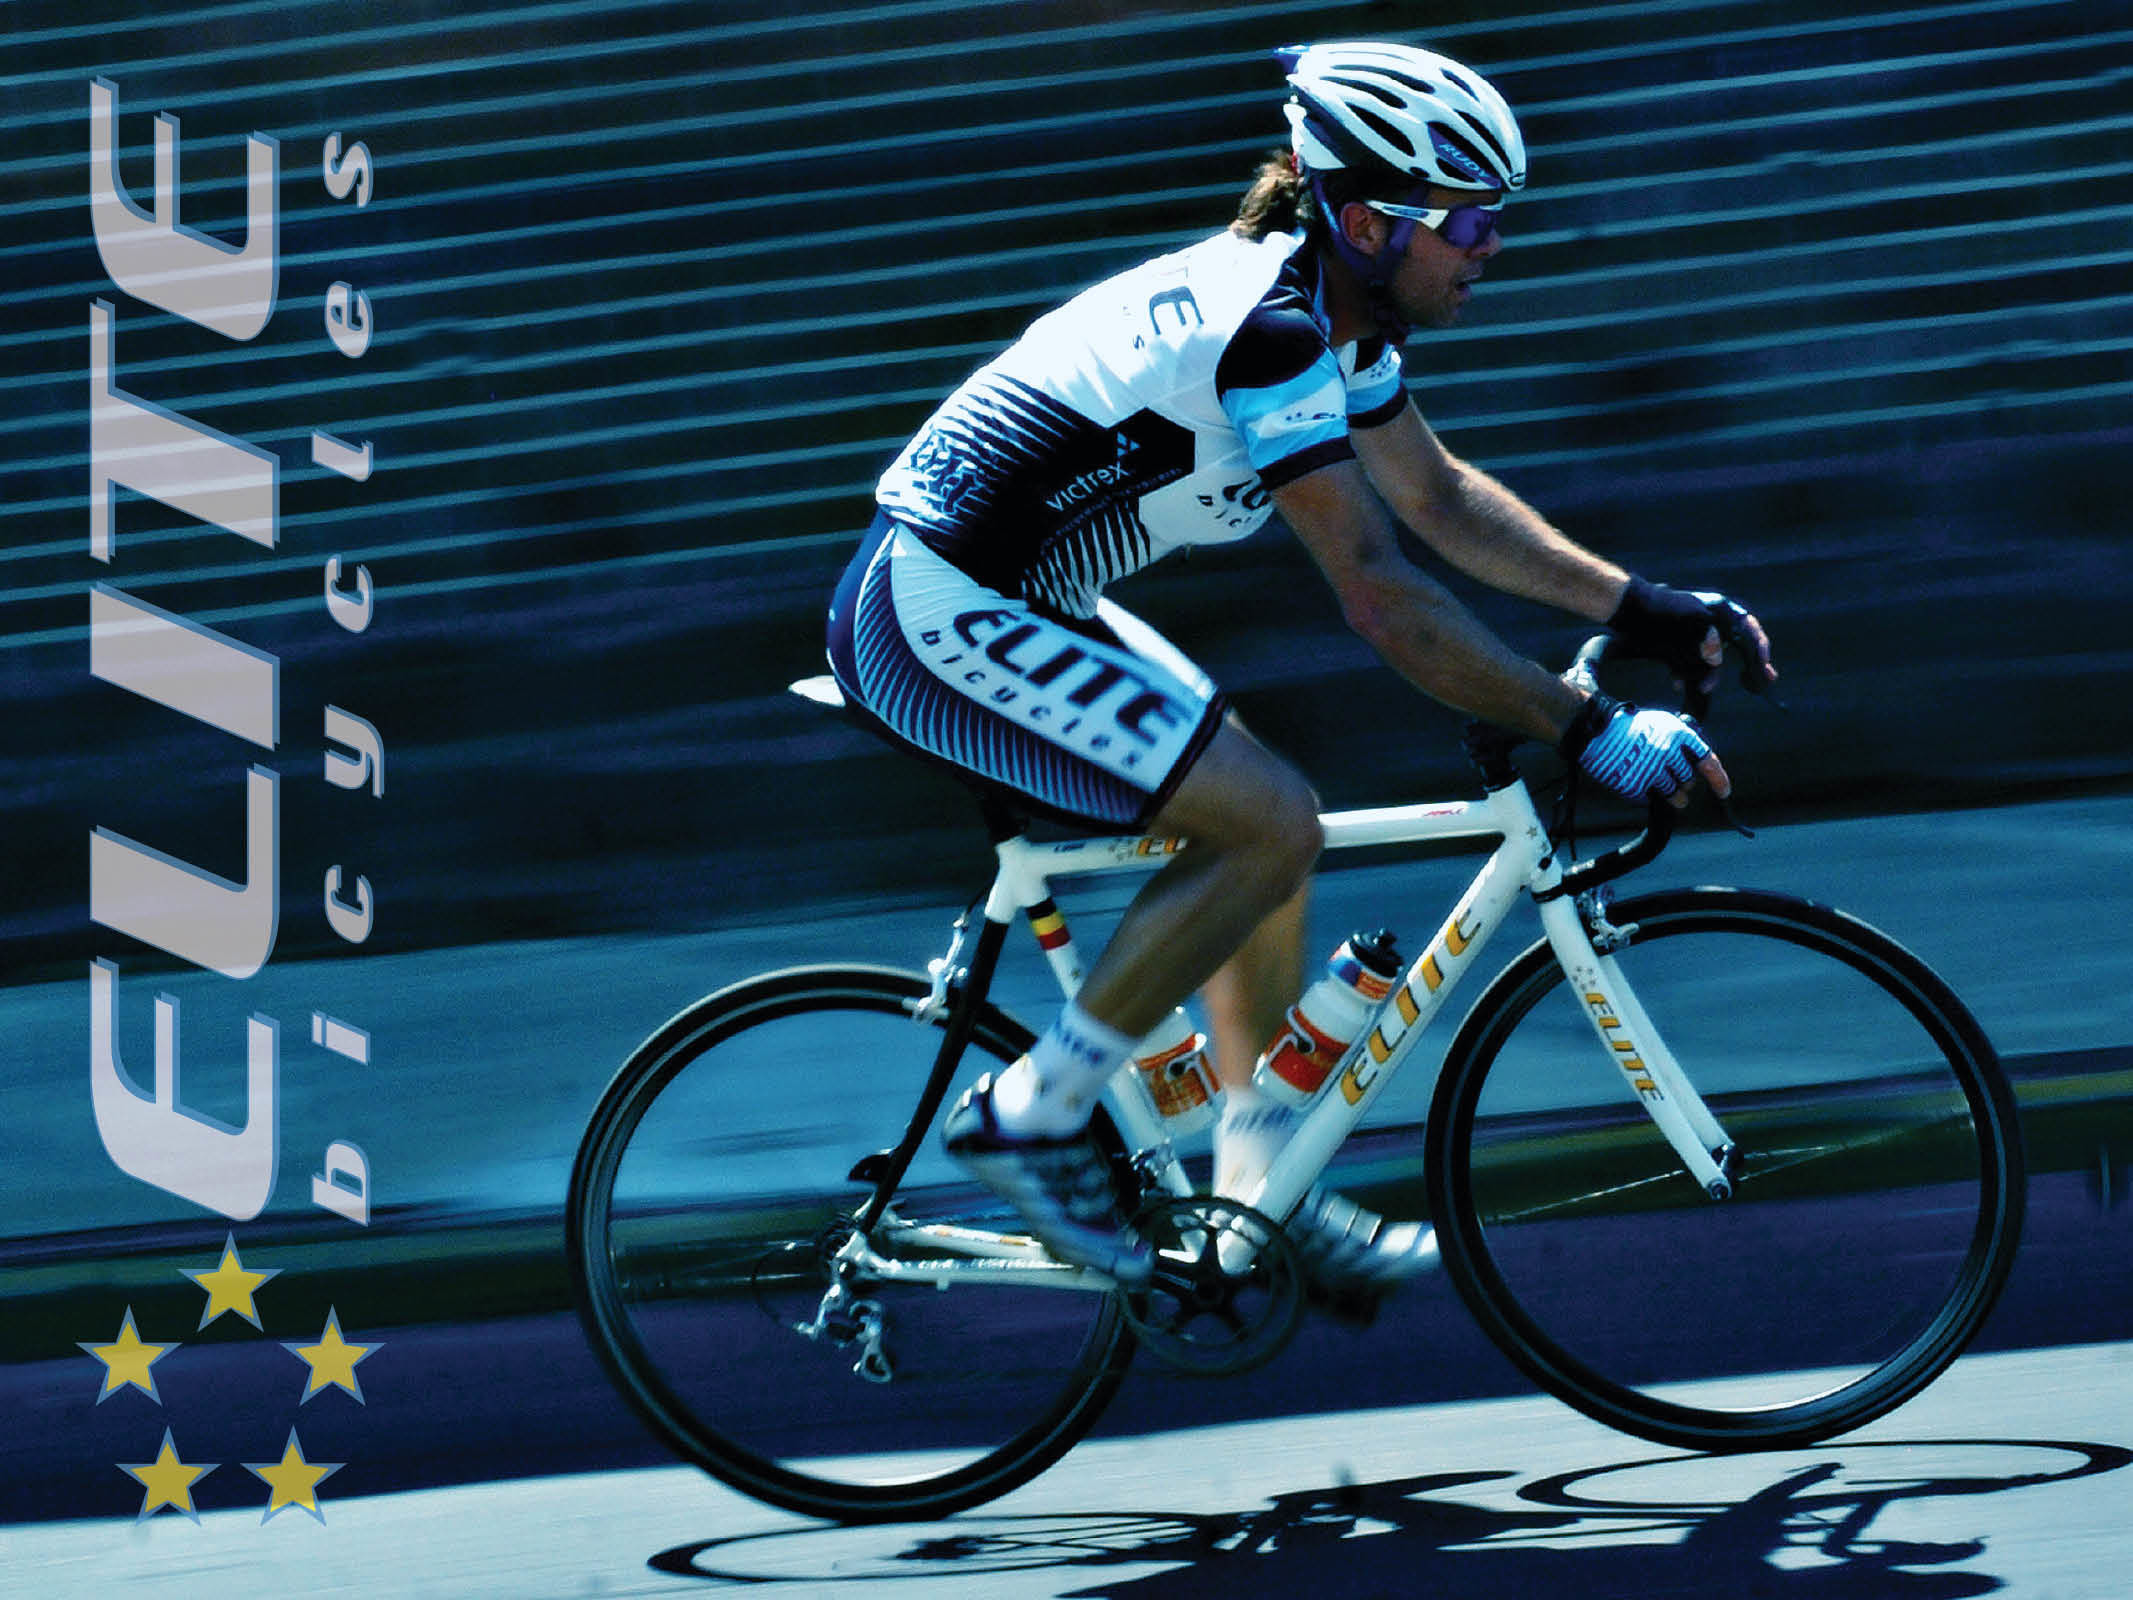 Bob Moskal on his way to solo Elite Bicycle road race win